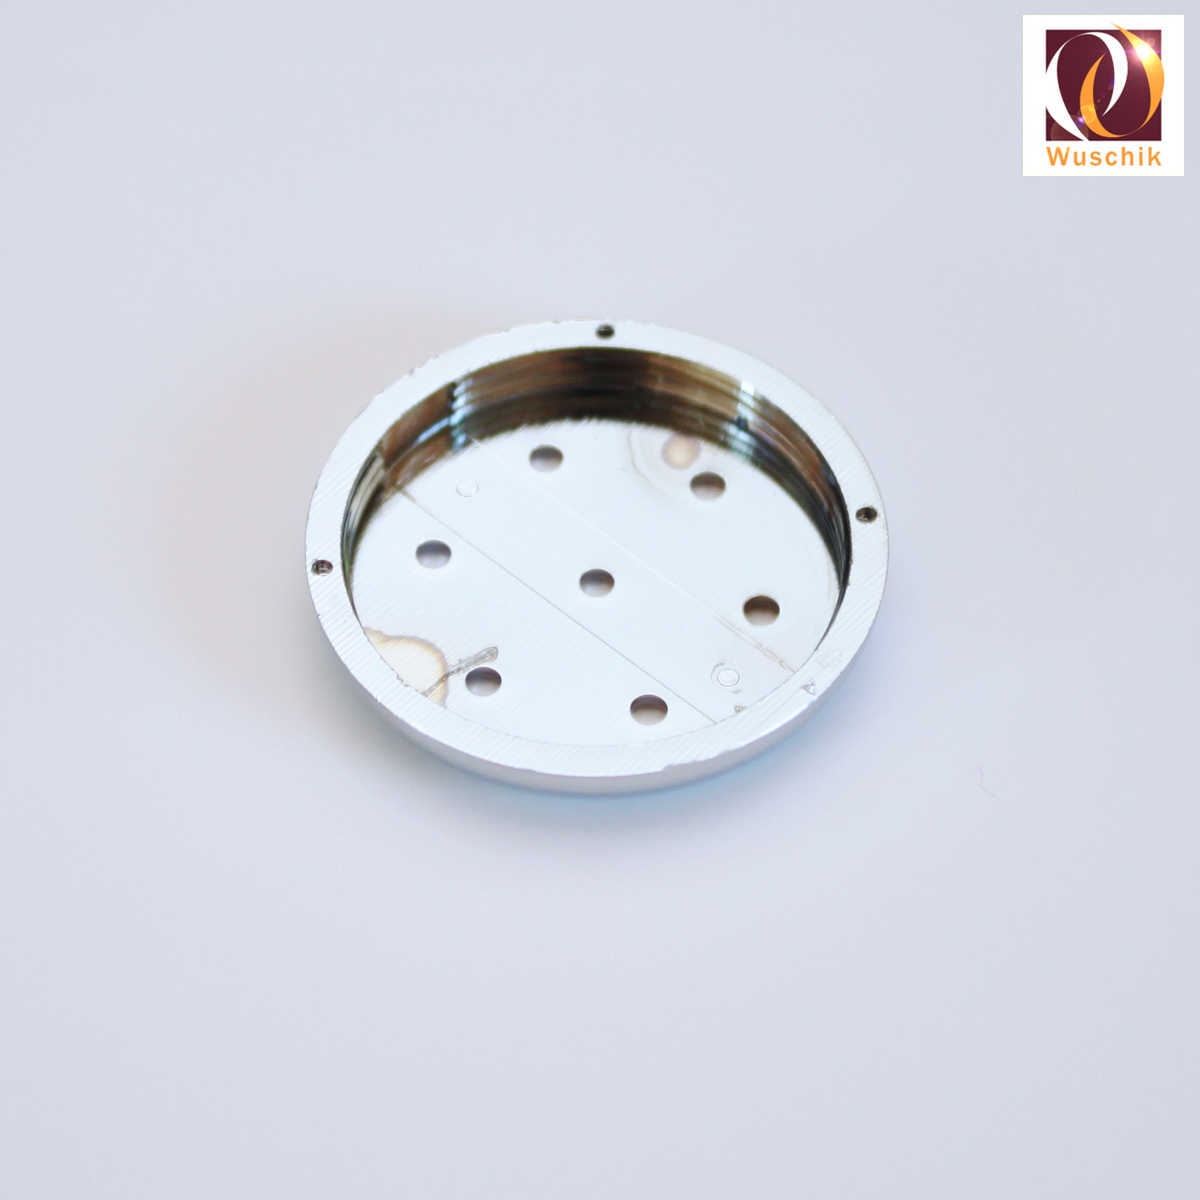 Jet-cap-front-plate-air-spa-whirlpool-tub-bubble-cover-chrome-7-holes-spare-replacement-27mm-screw-discharge